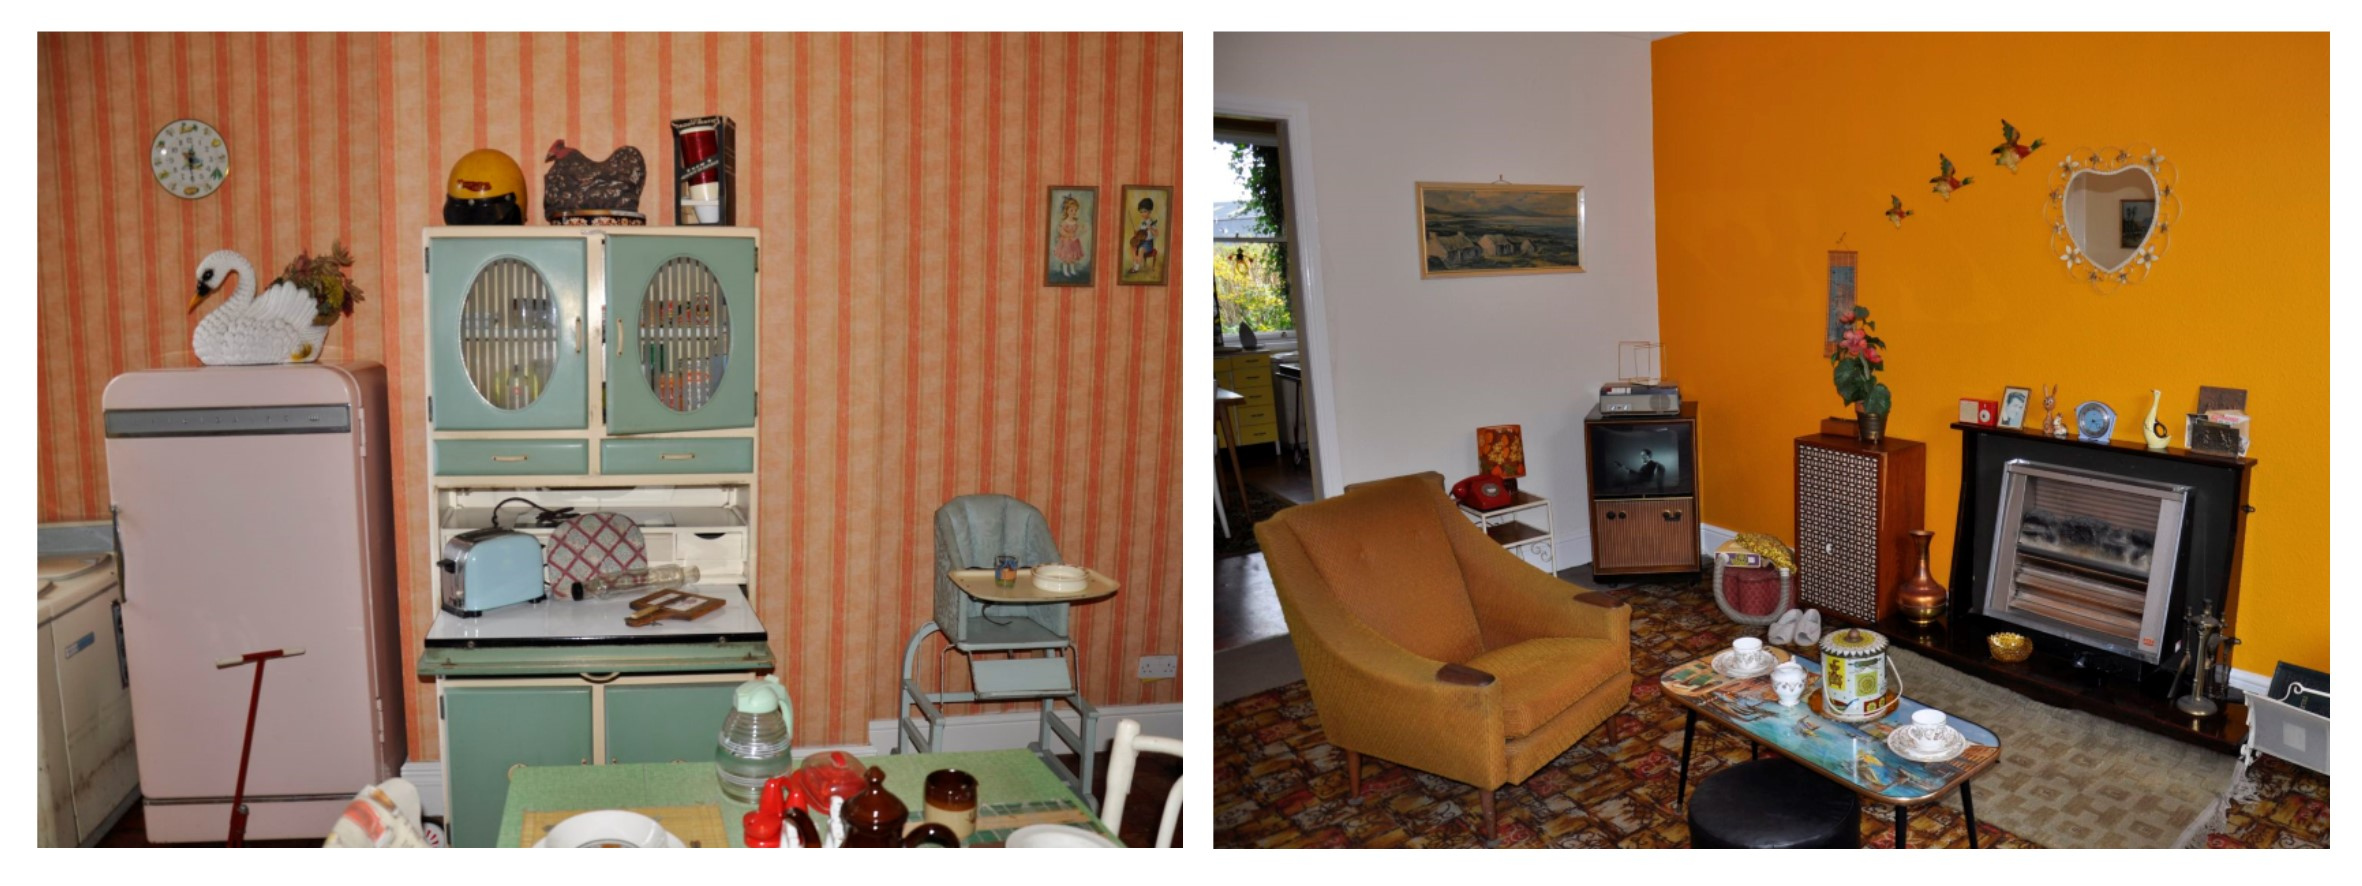 Two photographs showing the brightly coloured kitchen and living room of the 1960s cottage at Summerlee, with cast iron range and recessed beds